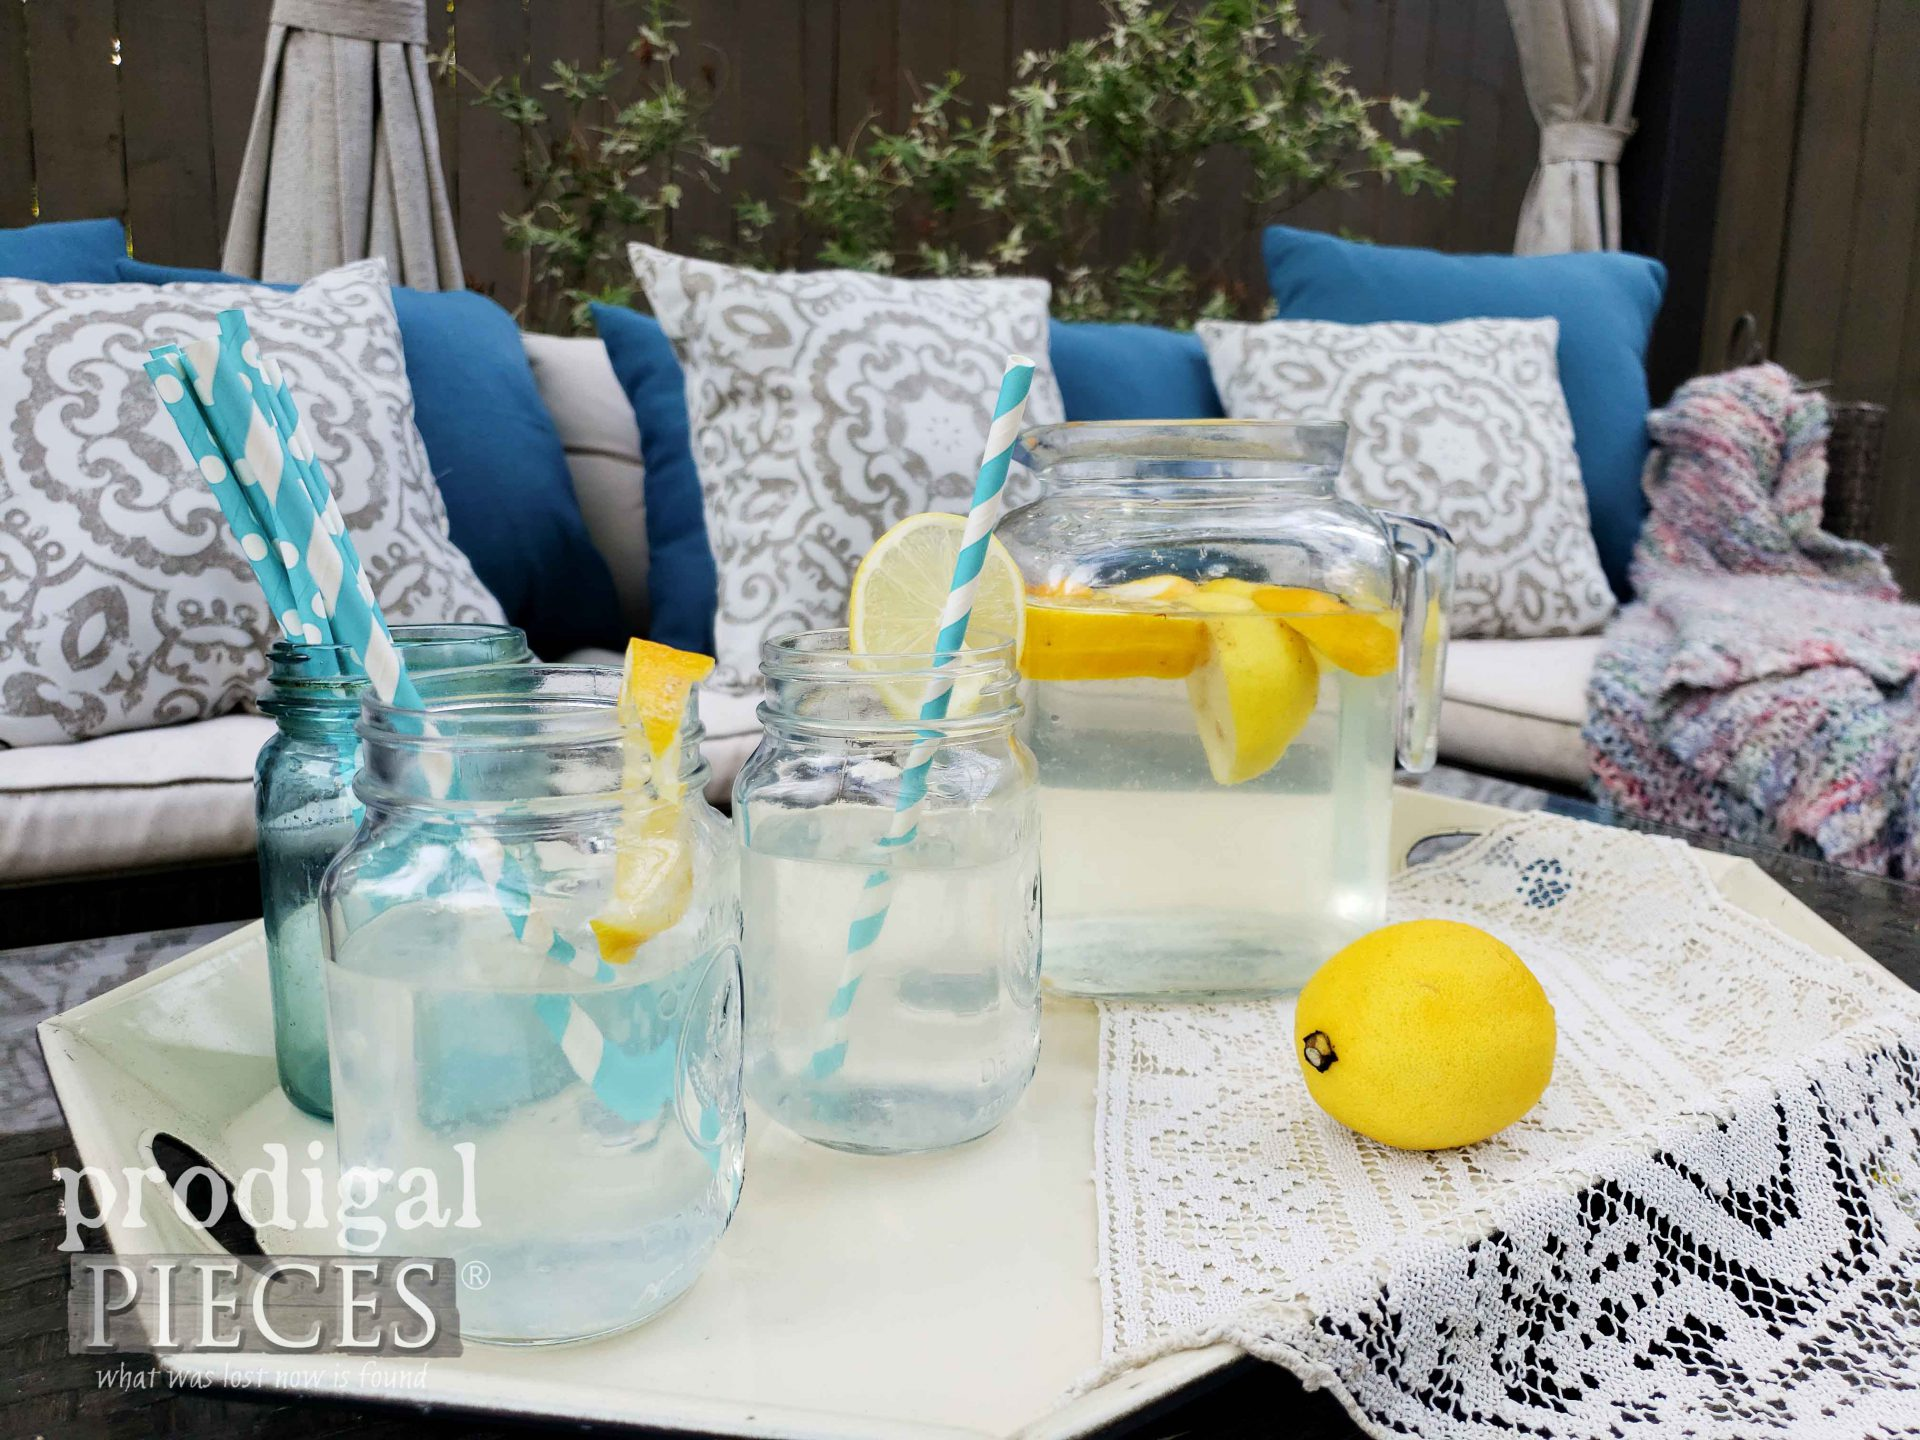 Homemade Fresh Lemonade on DIY Patio | Prodigal Pieces | prodigalpieces.com #prodigalpieces #patio #outdoor #home #homedecor